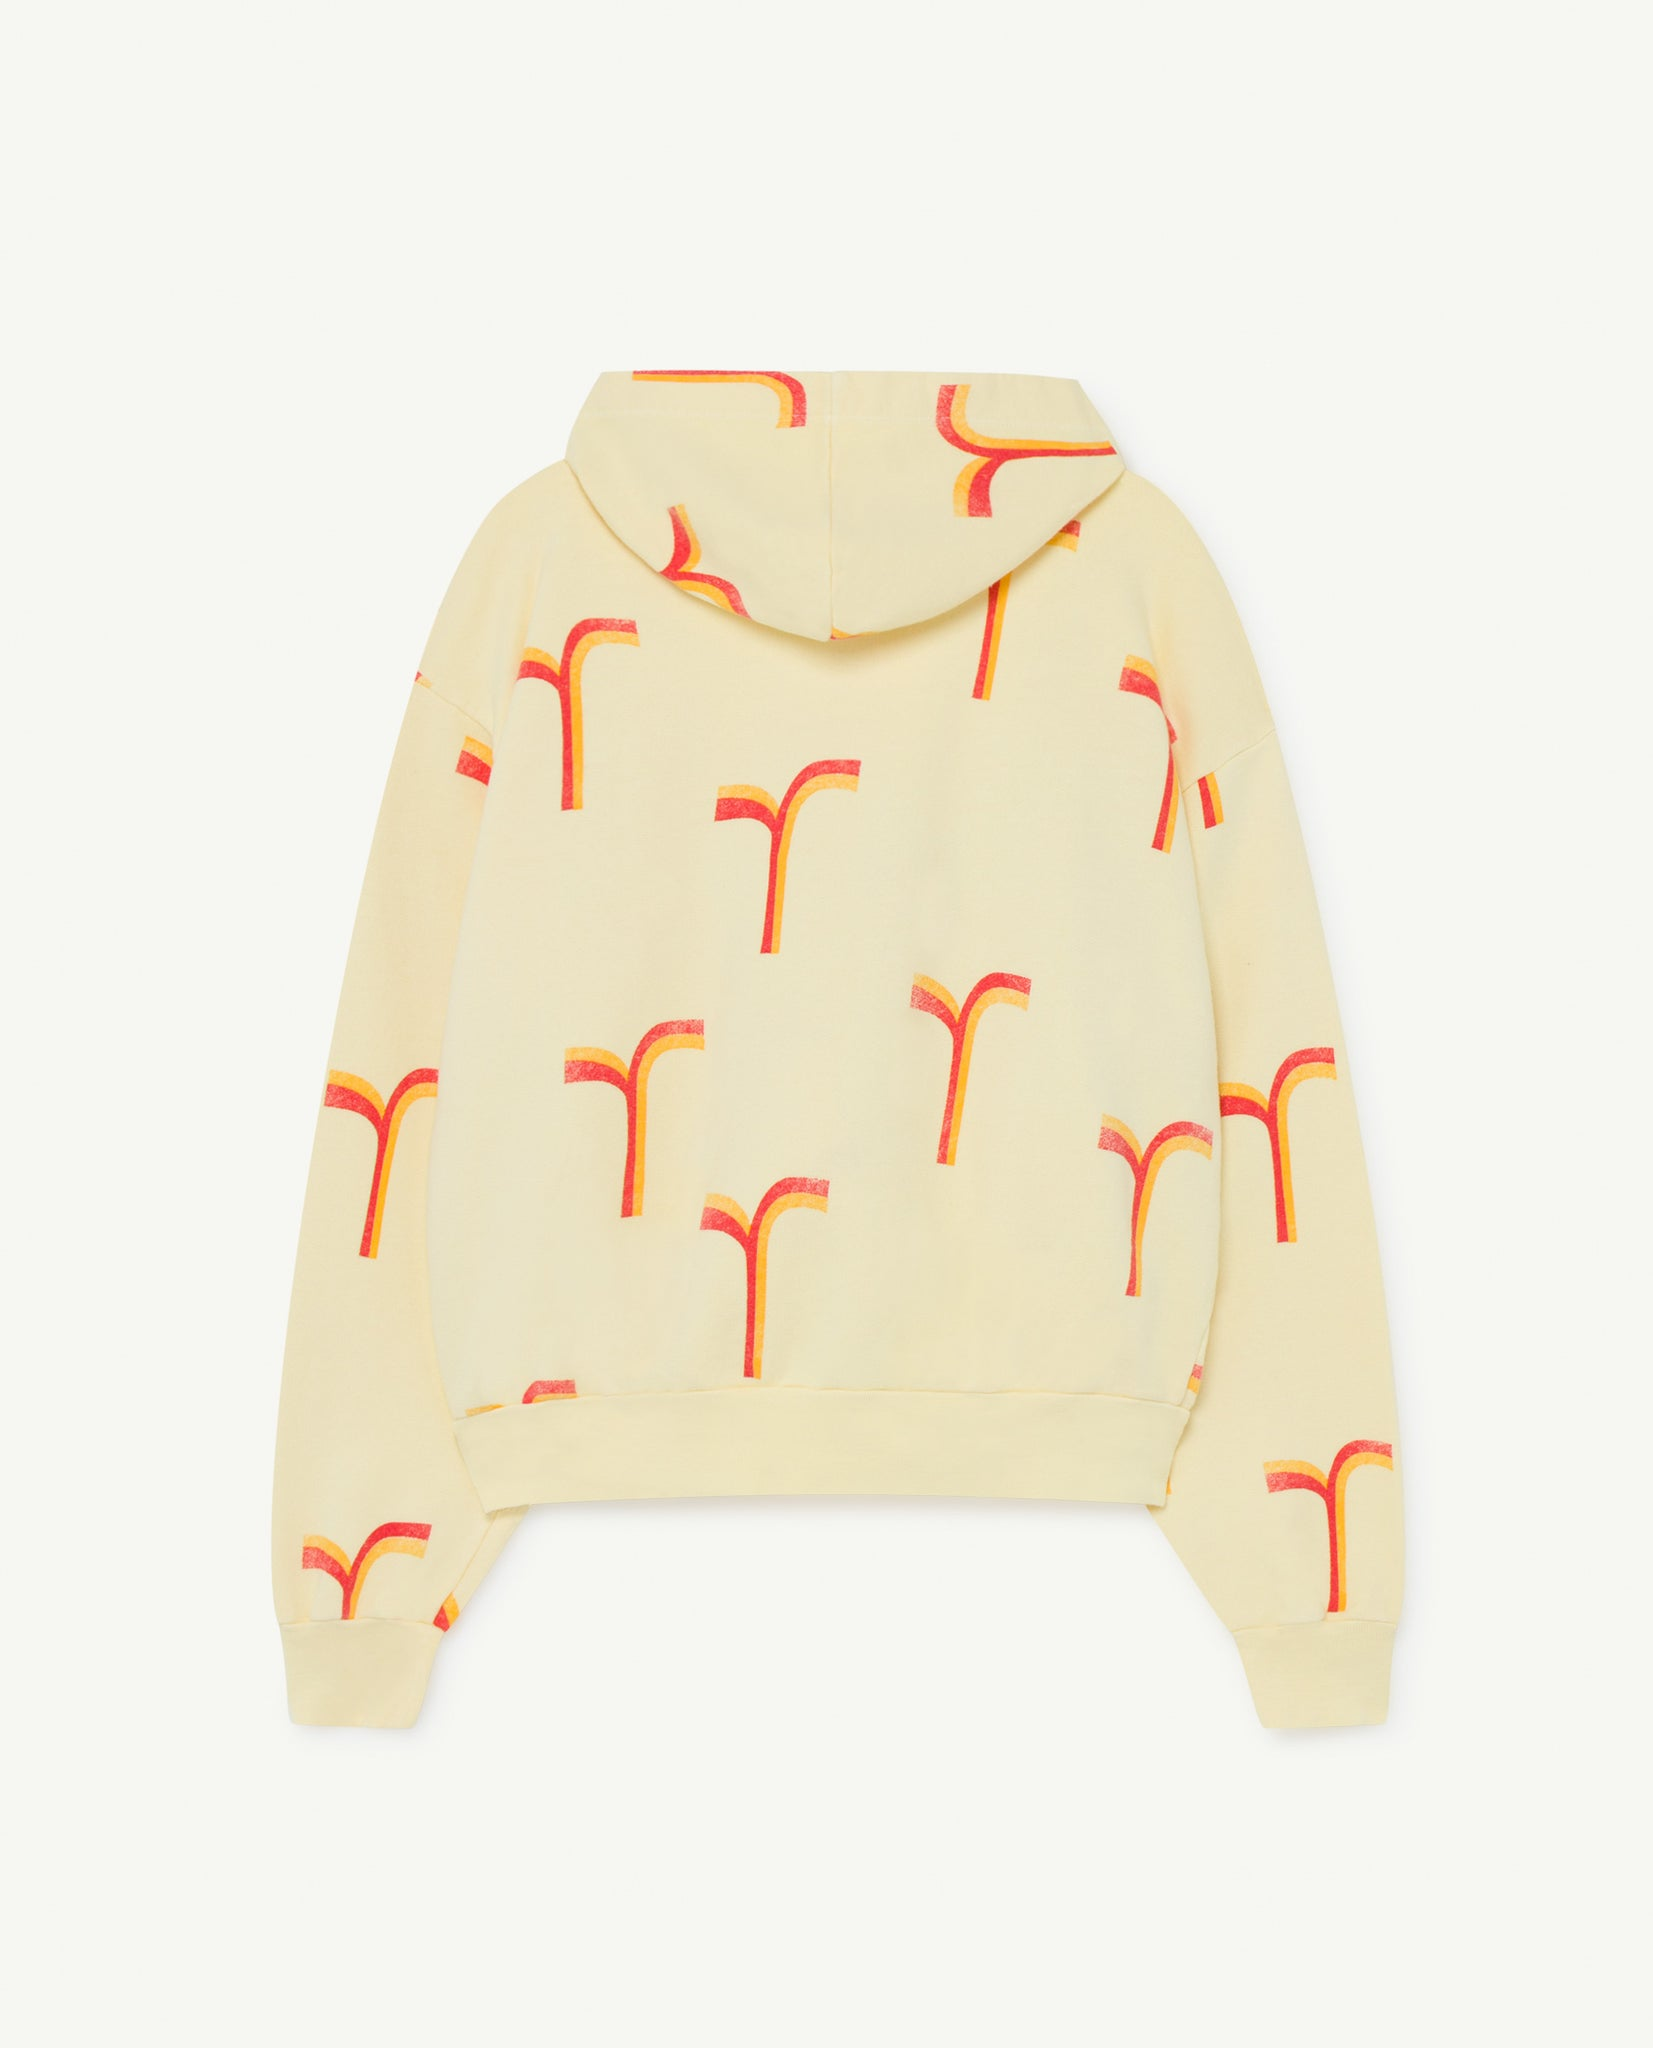 Seahorse Kids Sweatshirt - Yellow Geometric